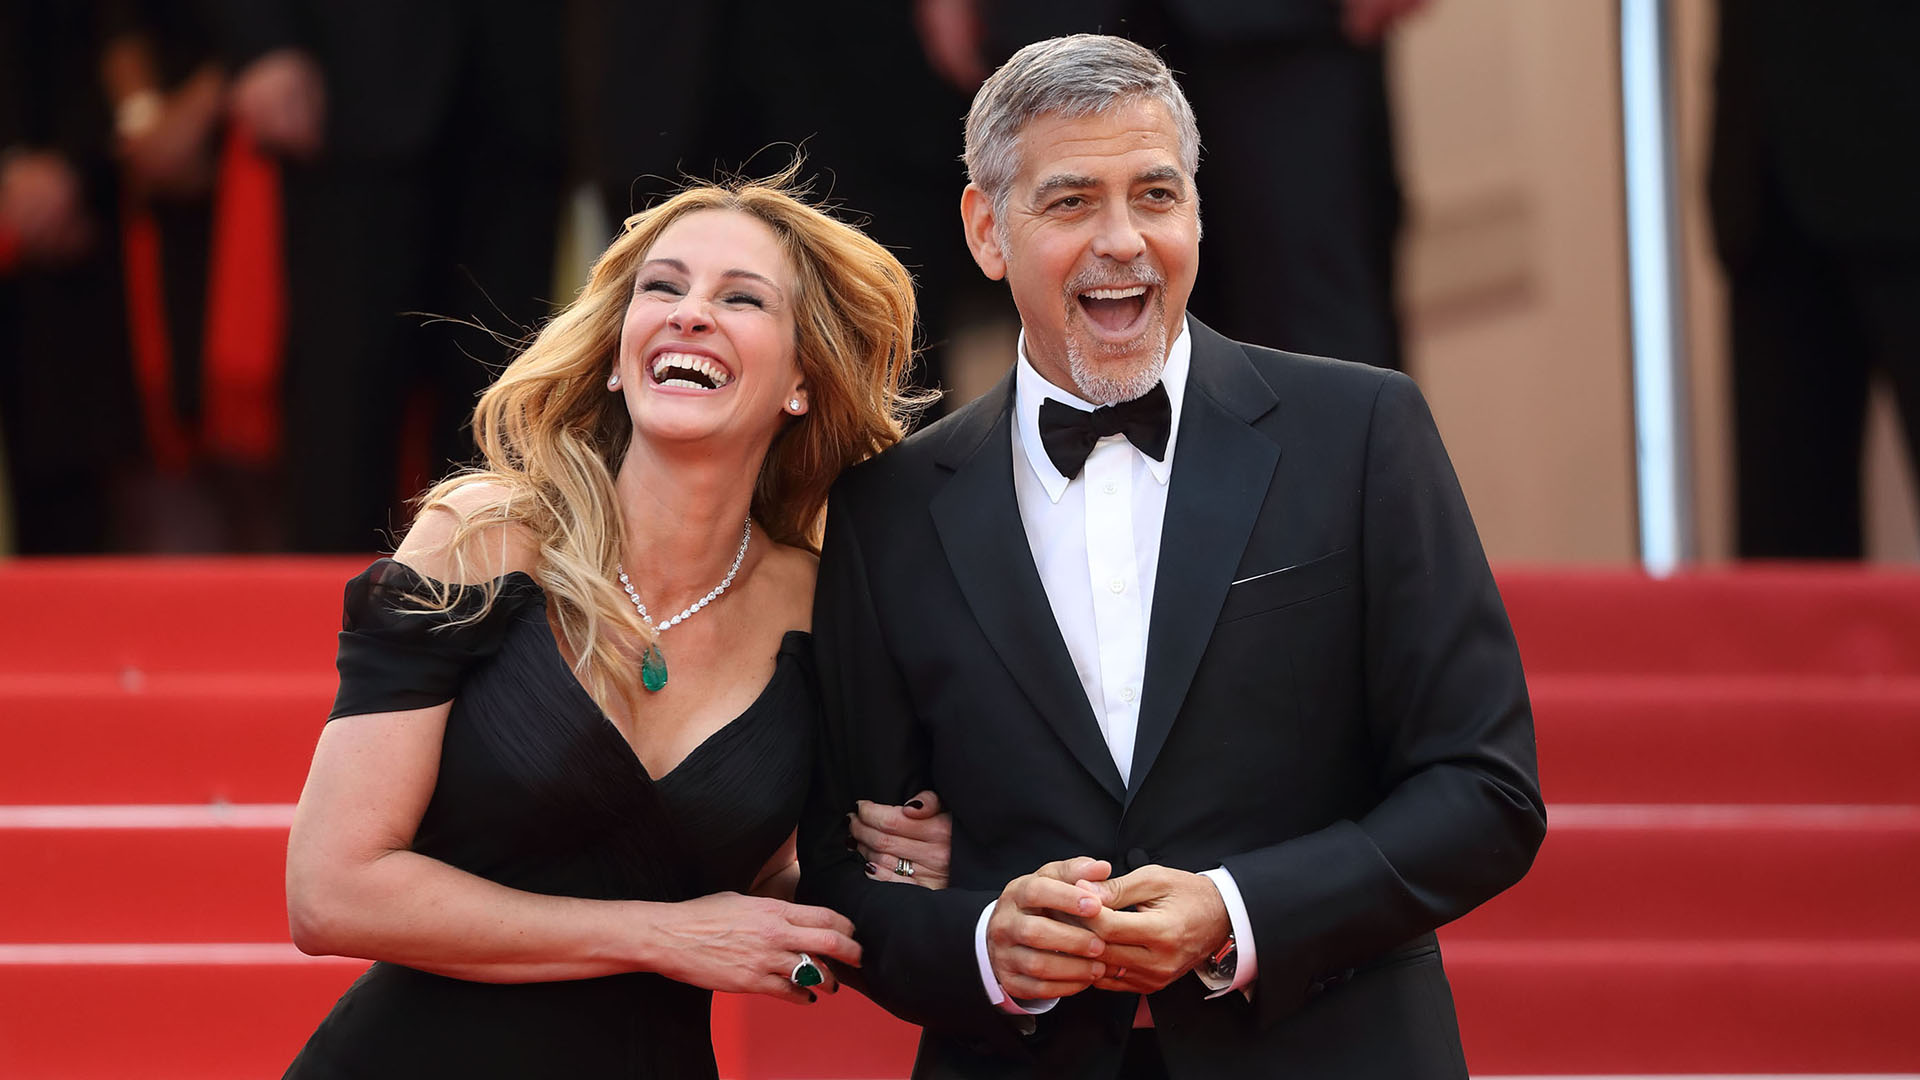 Julia Roberts is causing Trouble between George Clooney and Amal Clooney